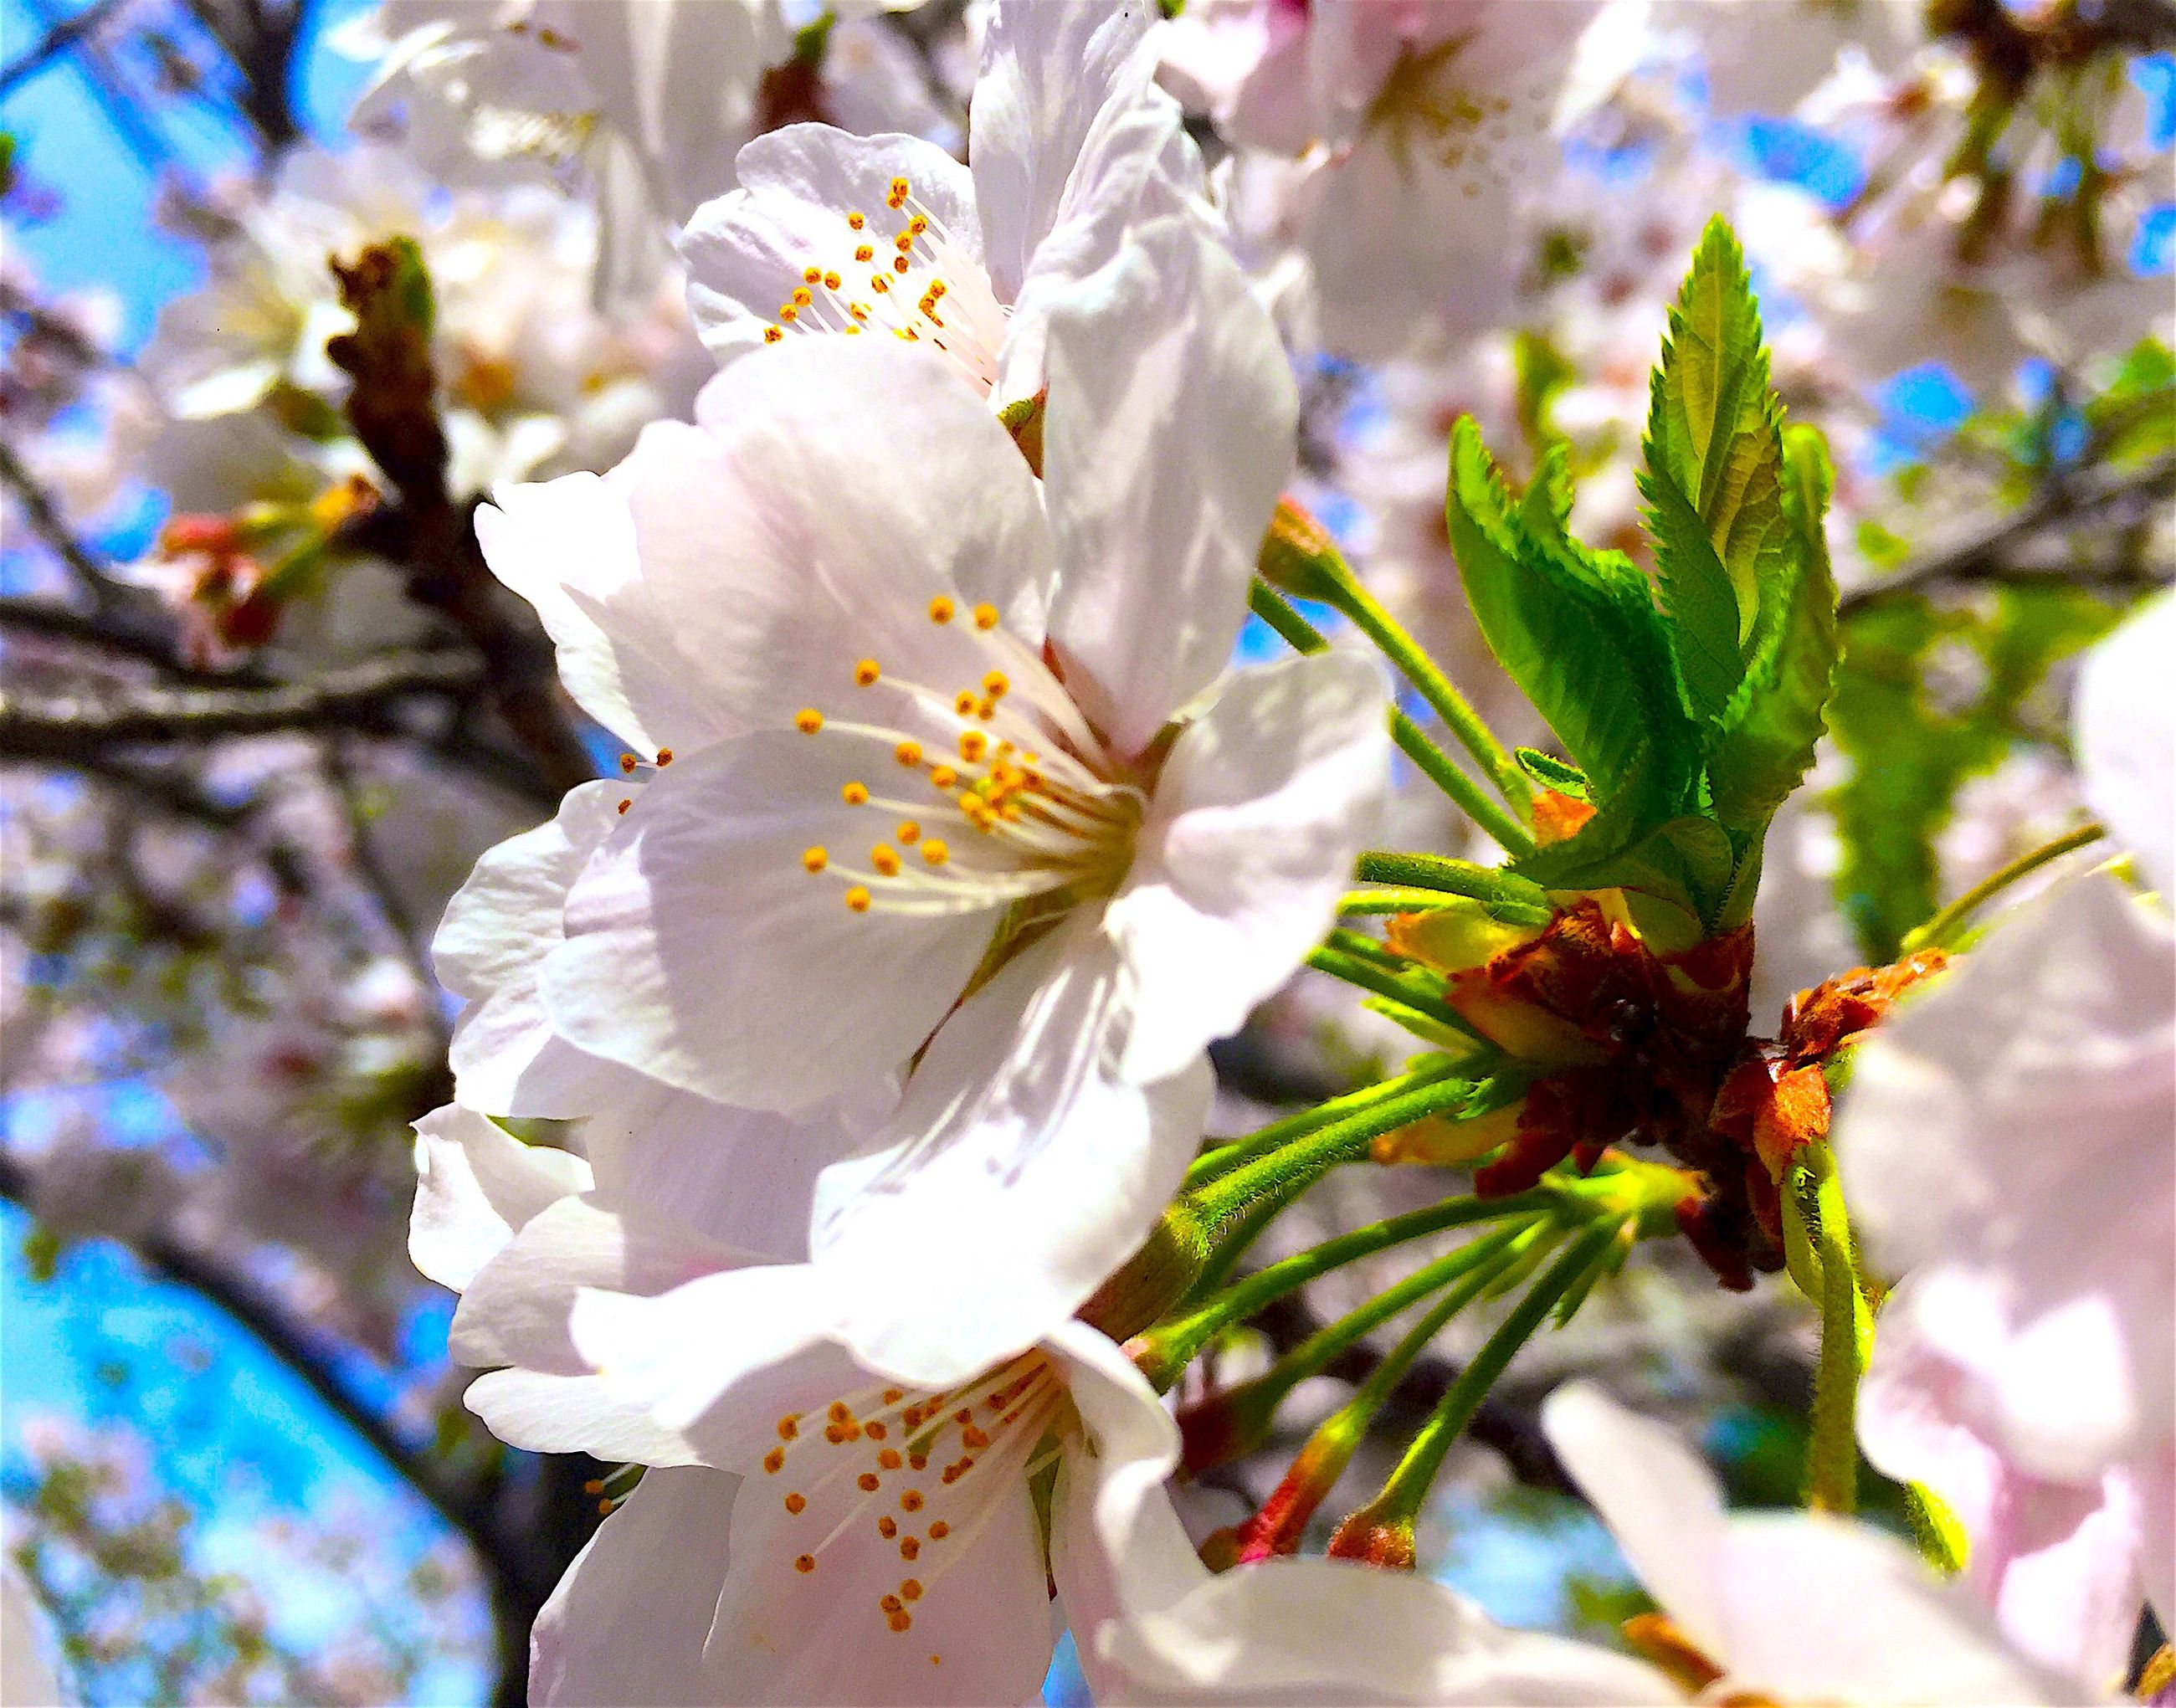 flower, freshness, petal, fragility, growth, focus on foreground, flower head, close-up, beauty in nature, white color, nature, blooming, in bloom, pollen, blossom, plant, stamen, day, outdoors, springtime